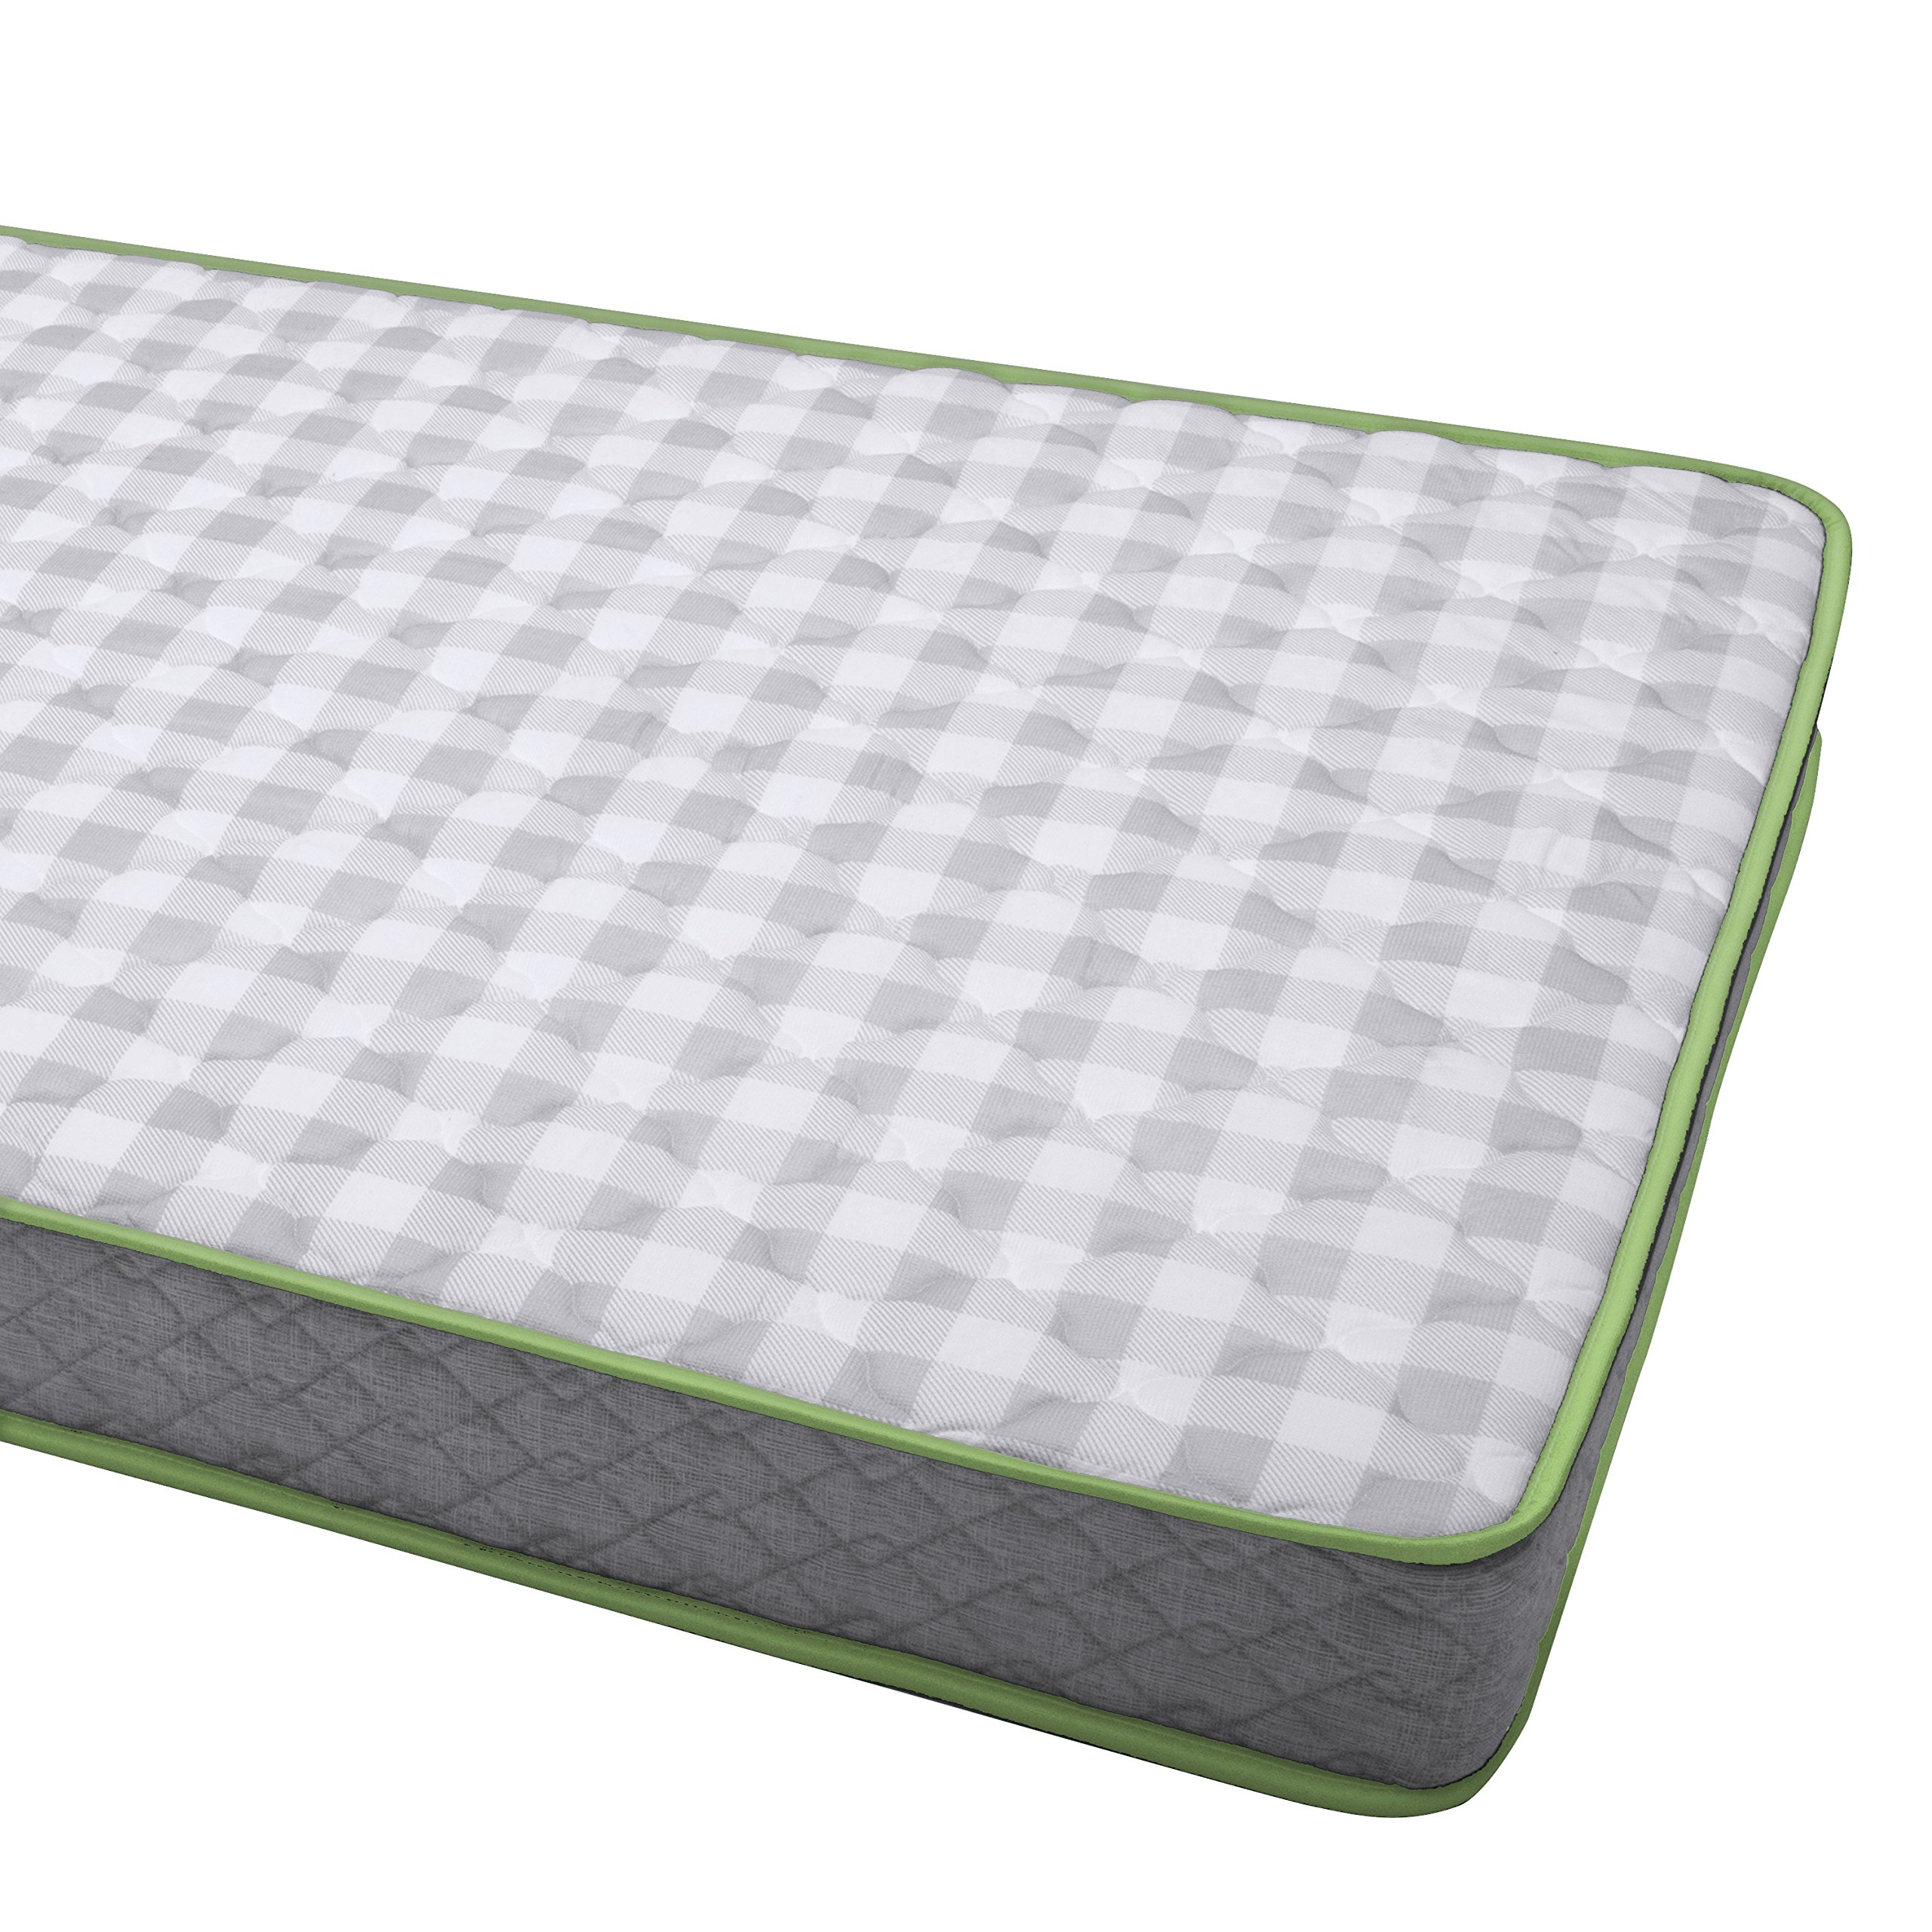 Luxury RV Mattress 53'' x 75'' Full Soft Mobile Mattress by Mobile Innerspace